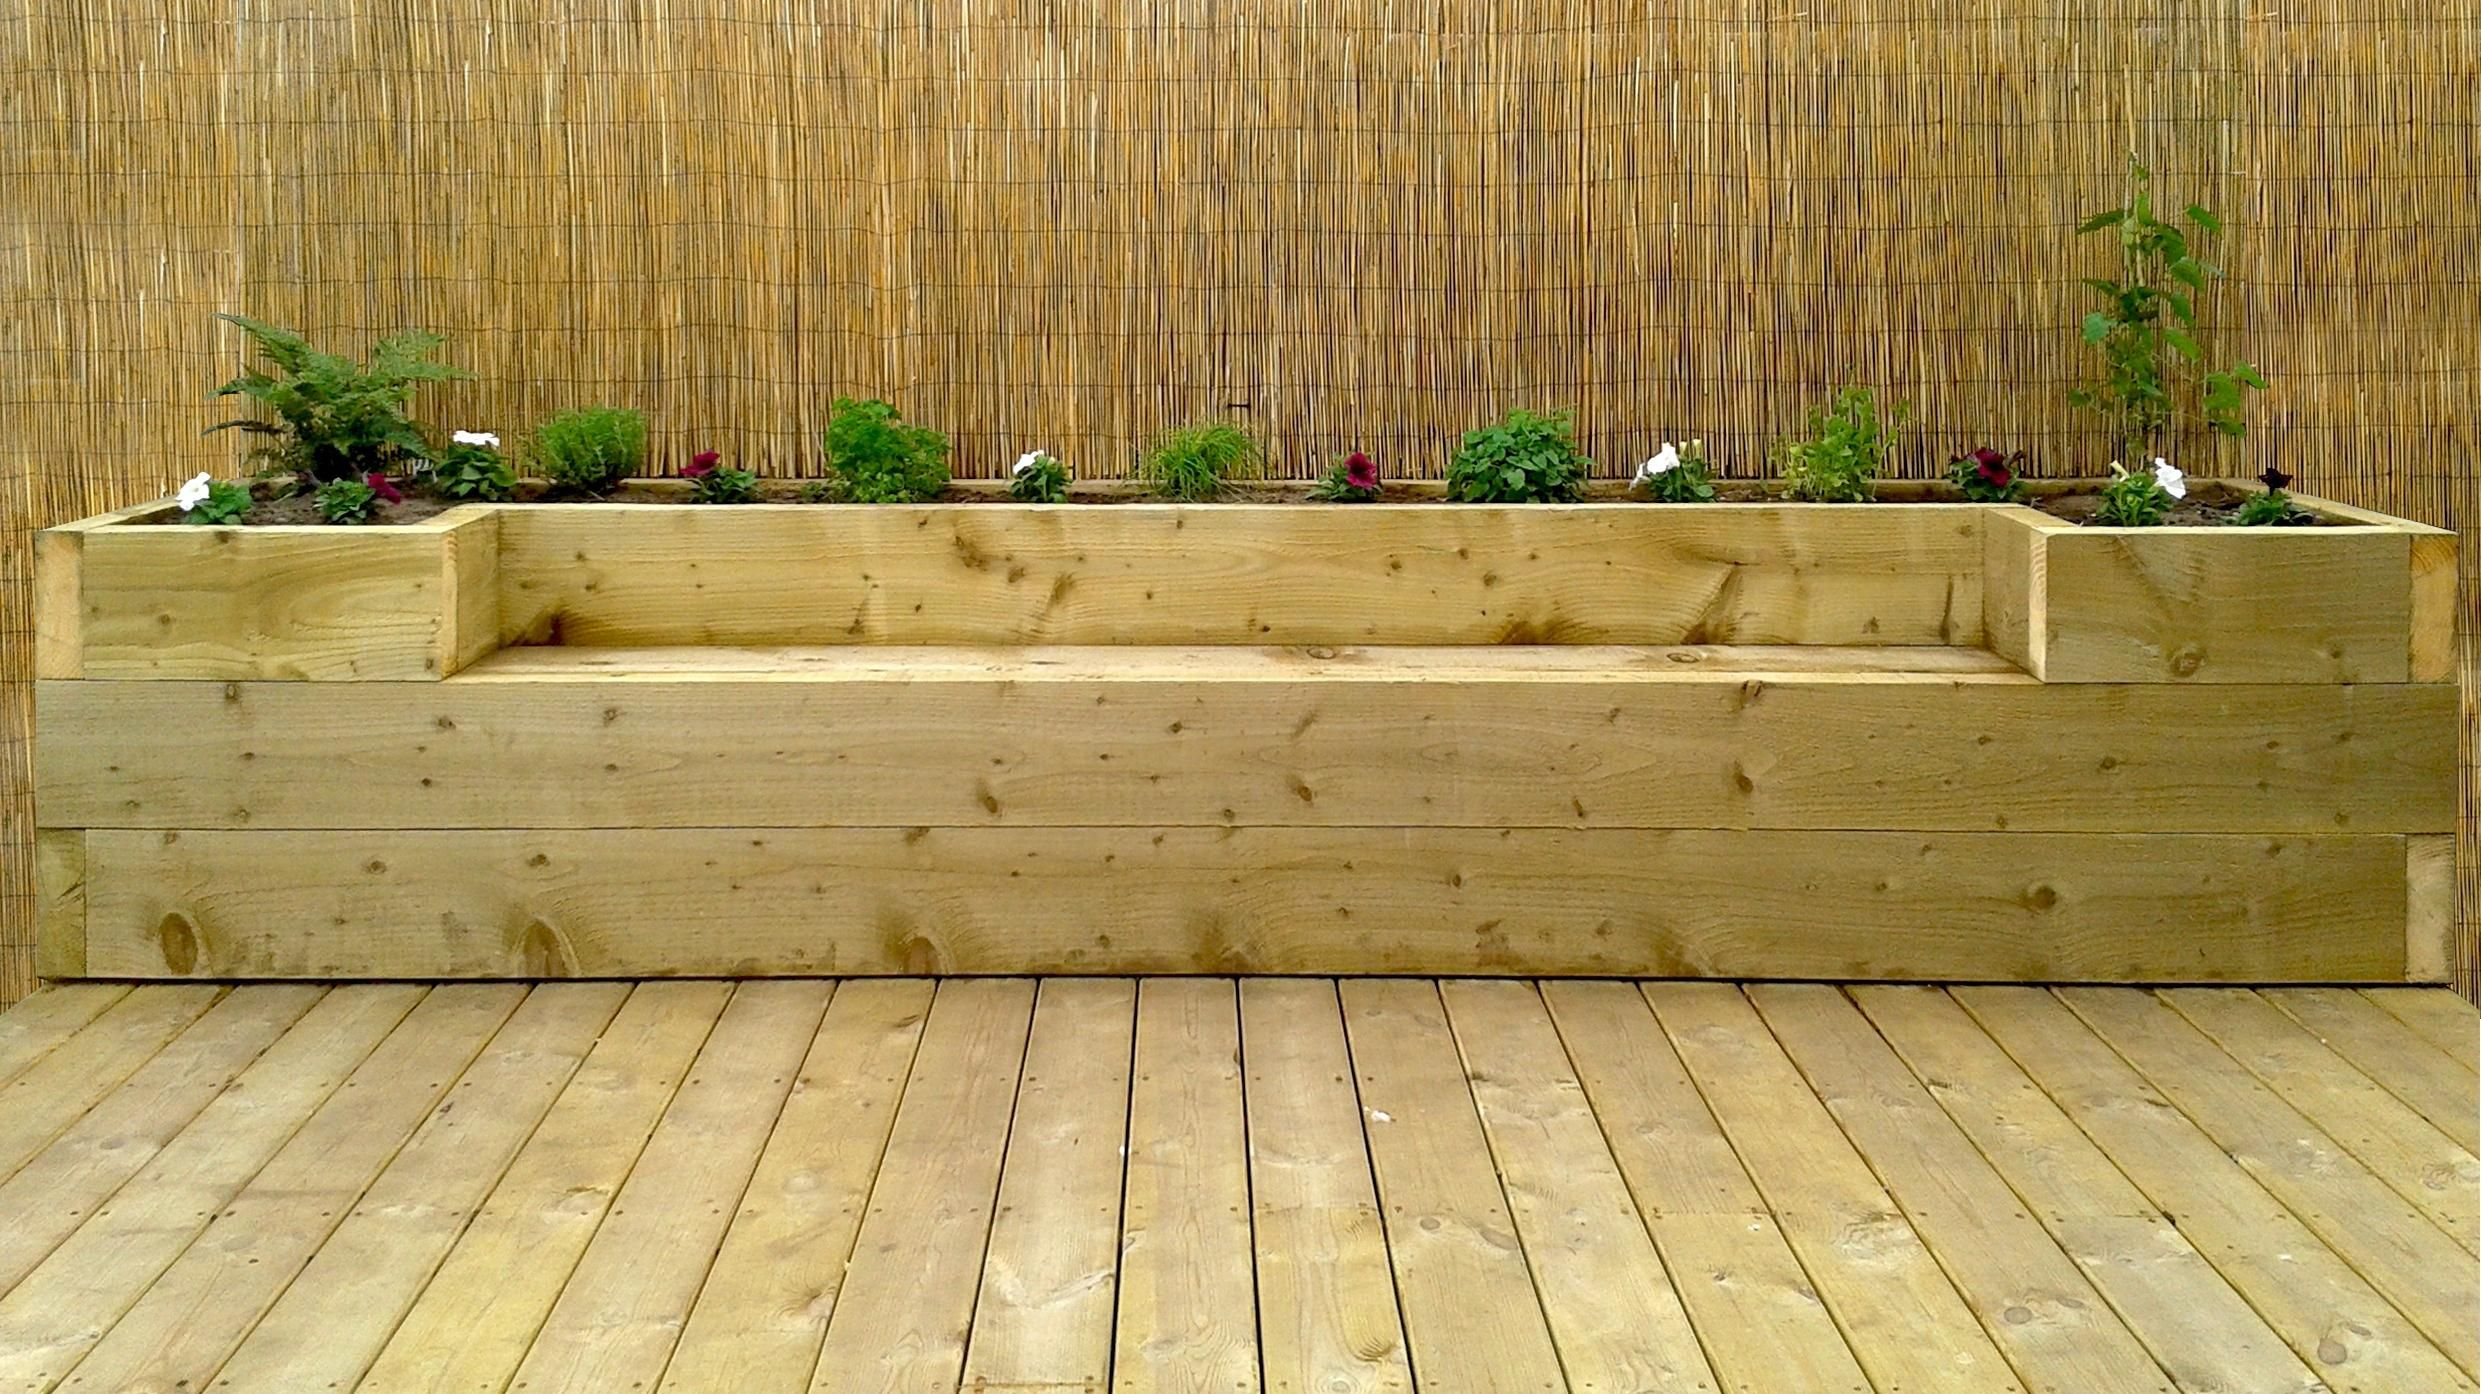 Raised Flower Beds Along Fence With Seating